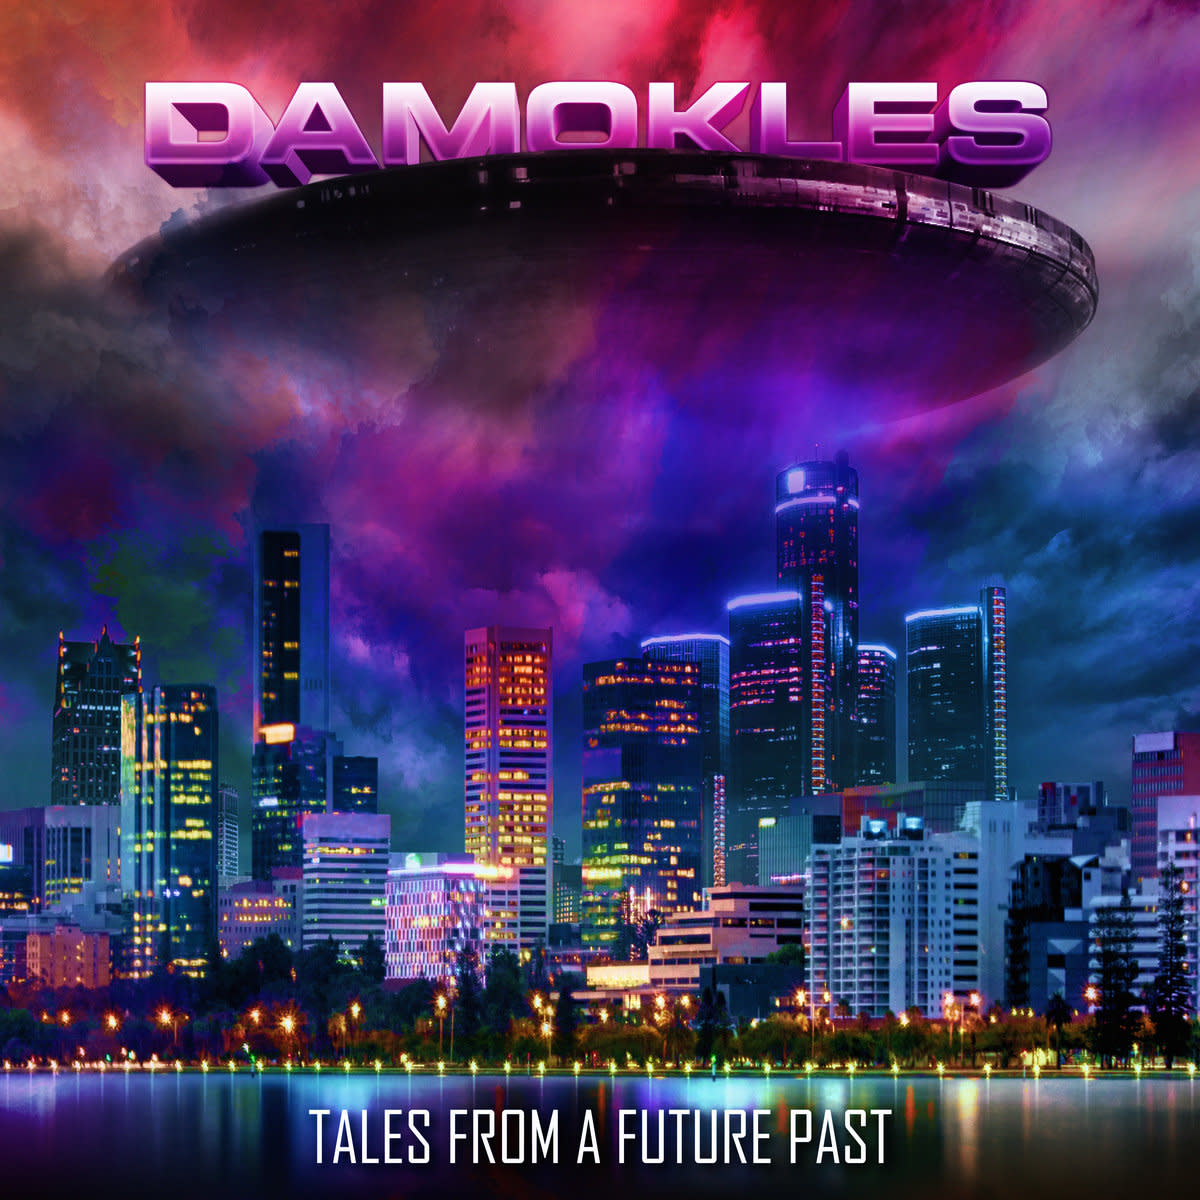 synth-album-review-damokles-tales-from-a-future-past